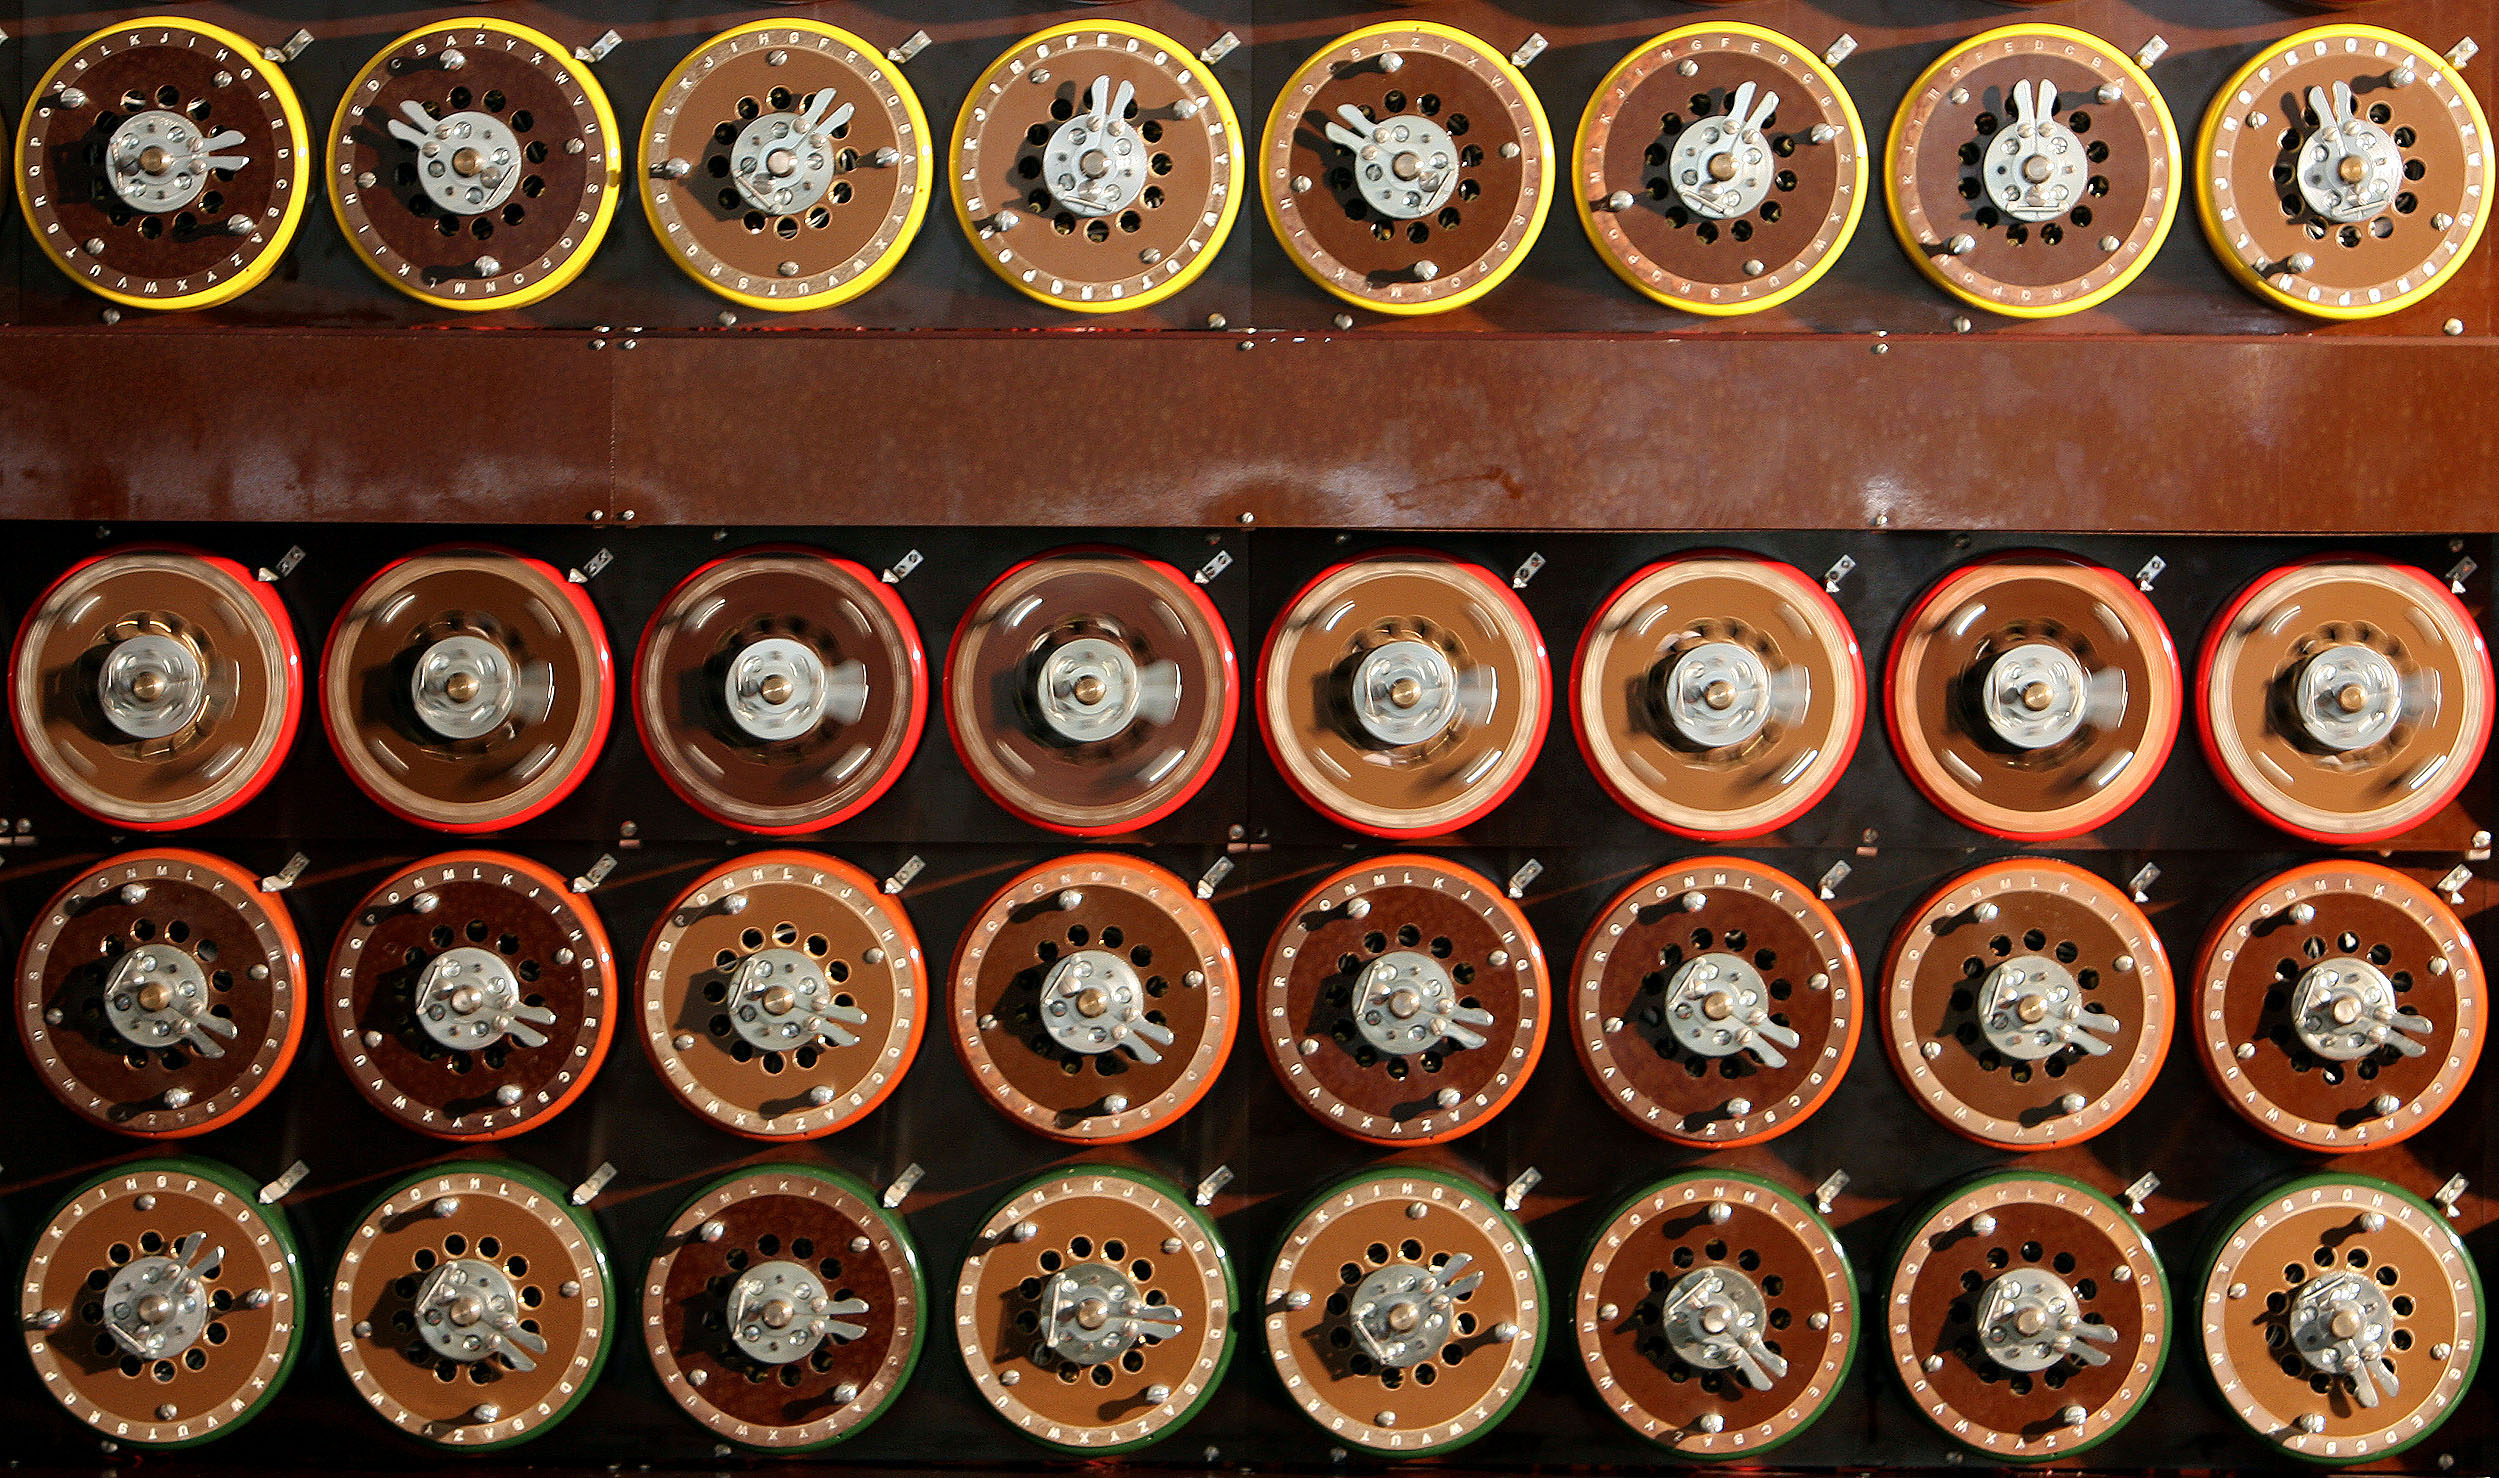 A British Turing Bombe machine is seen functioning in Bletchley Park Museum in Bletchley, central England, September 6, 2006. For the first time in sixty years Bletchley Park re-created the way the 'unbreakable' Enigma code was broken using functioning World War Two equipment. The Bombe was the brainchild of mathematical geniuses Alan Turing and Gordon Welchman, and enabled Bletchley Park's Cryptographers to decode over 3000 enemy messages a day breaking the codes created by German military Enigma machine during World War Two.   REUTERS/Alessia Pierdomenico (BRITAIN)